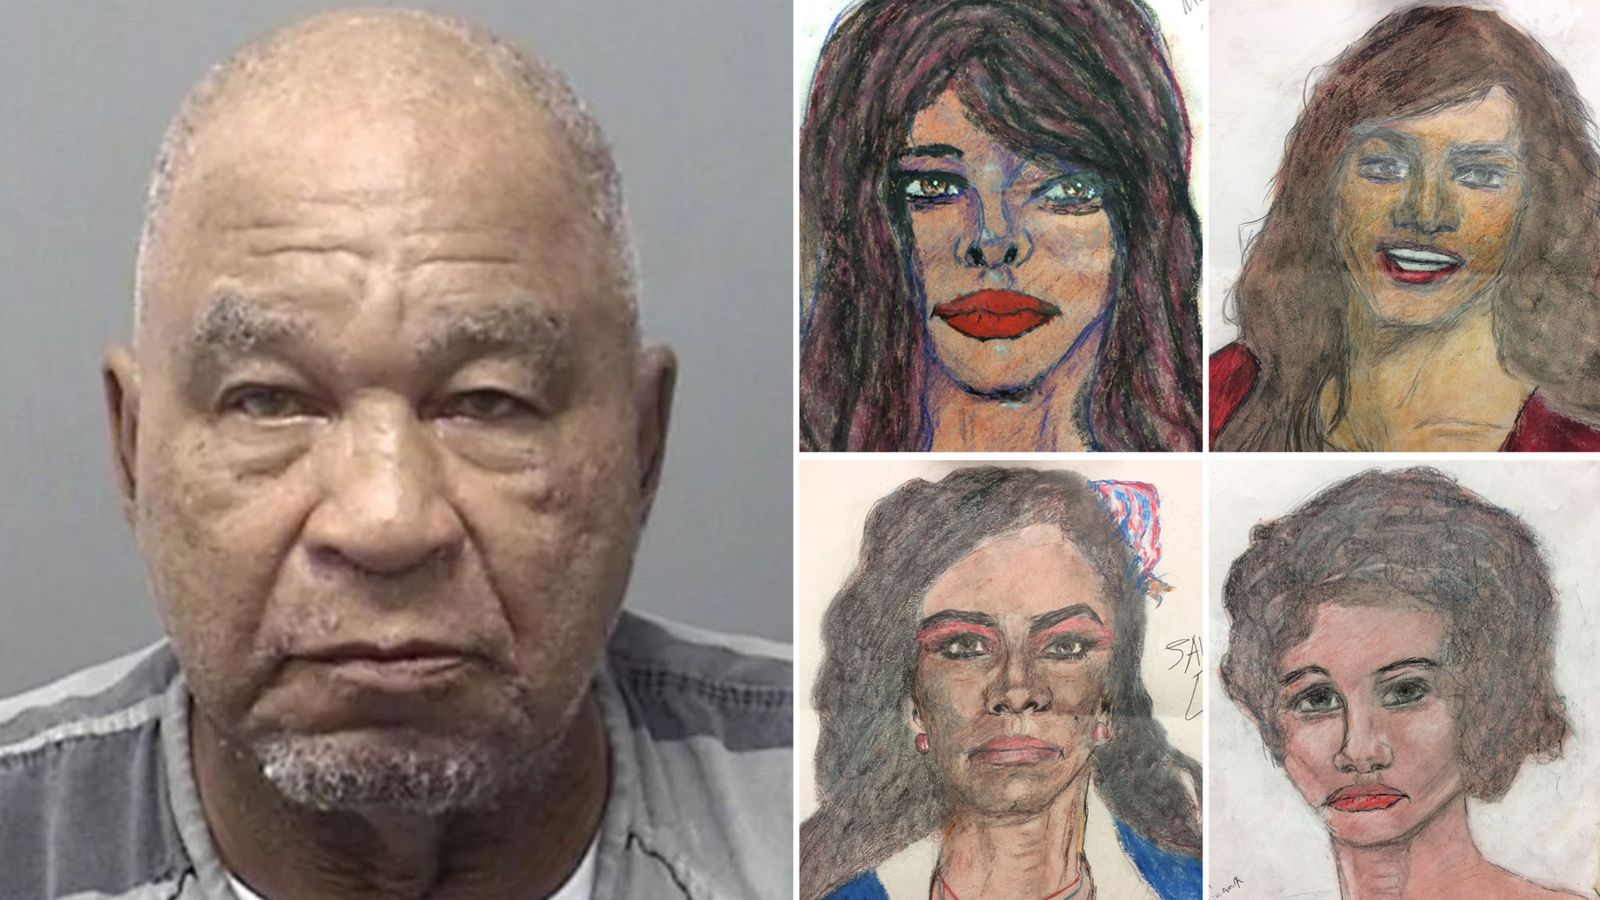 Samuel Little-US serial killer